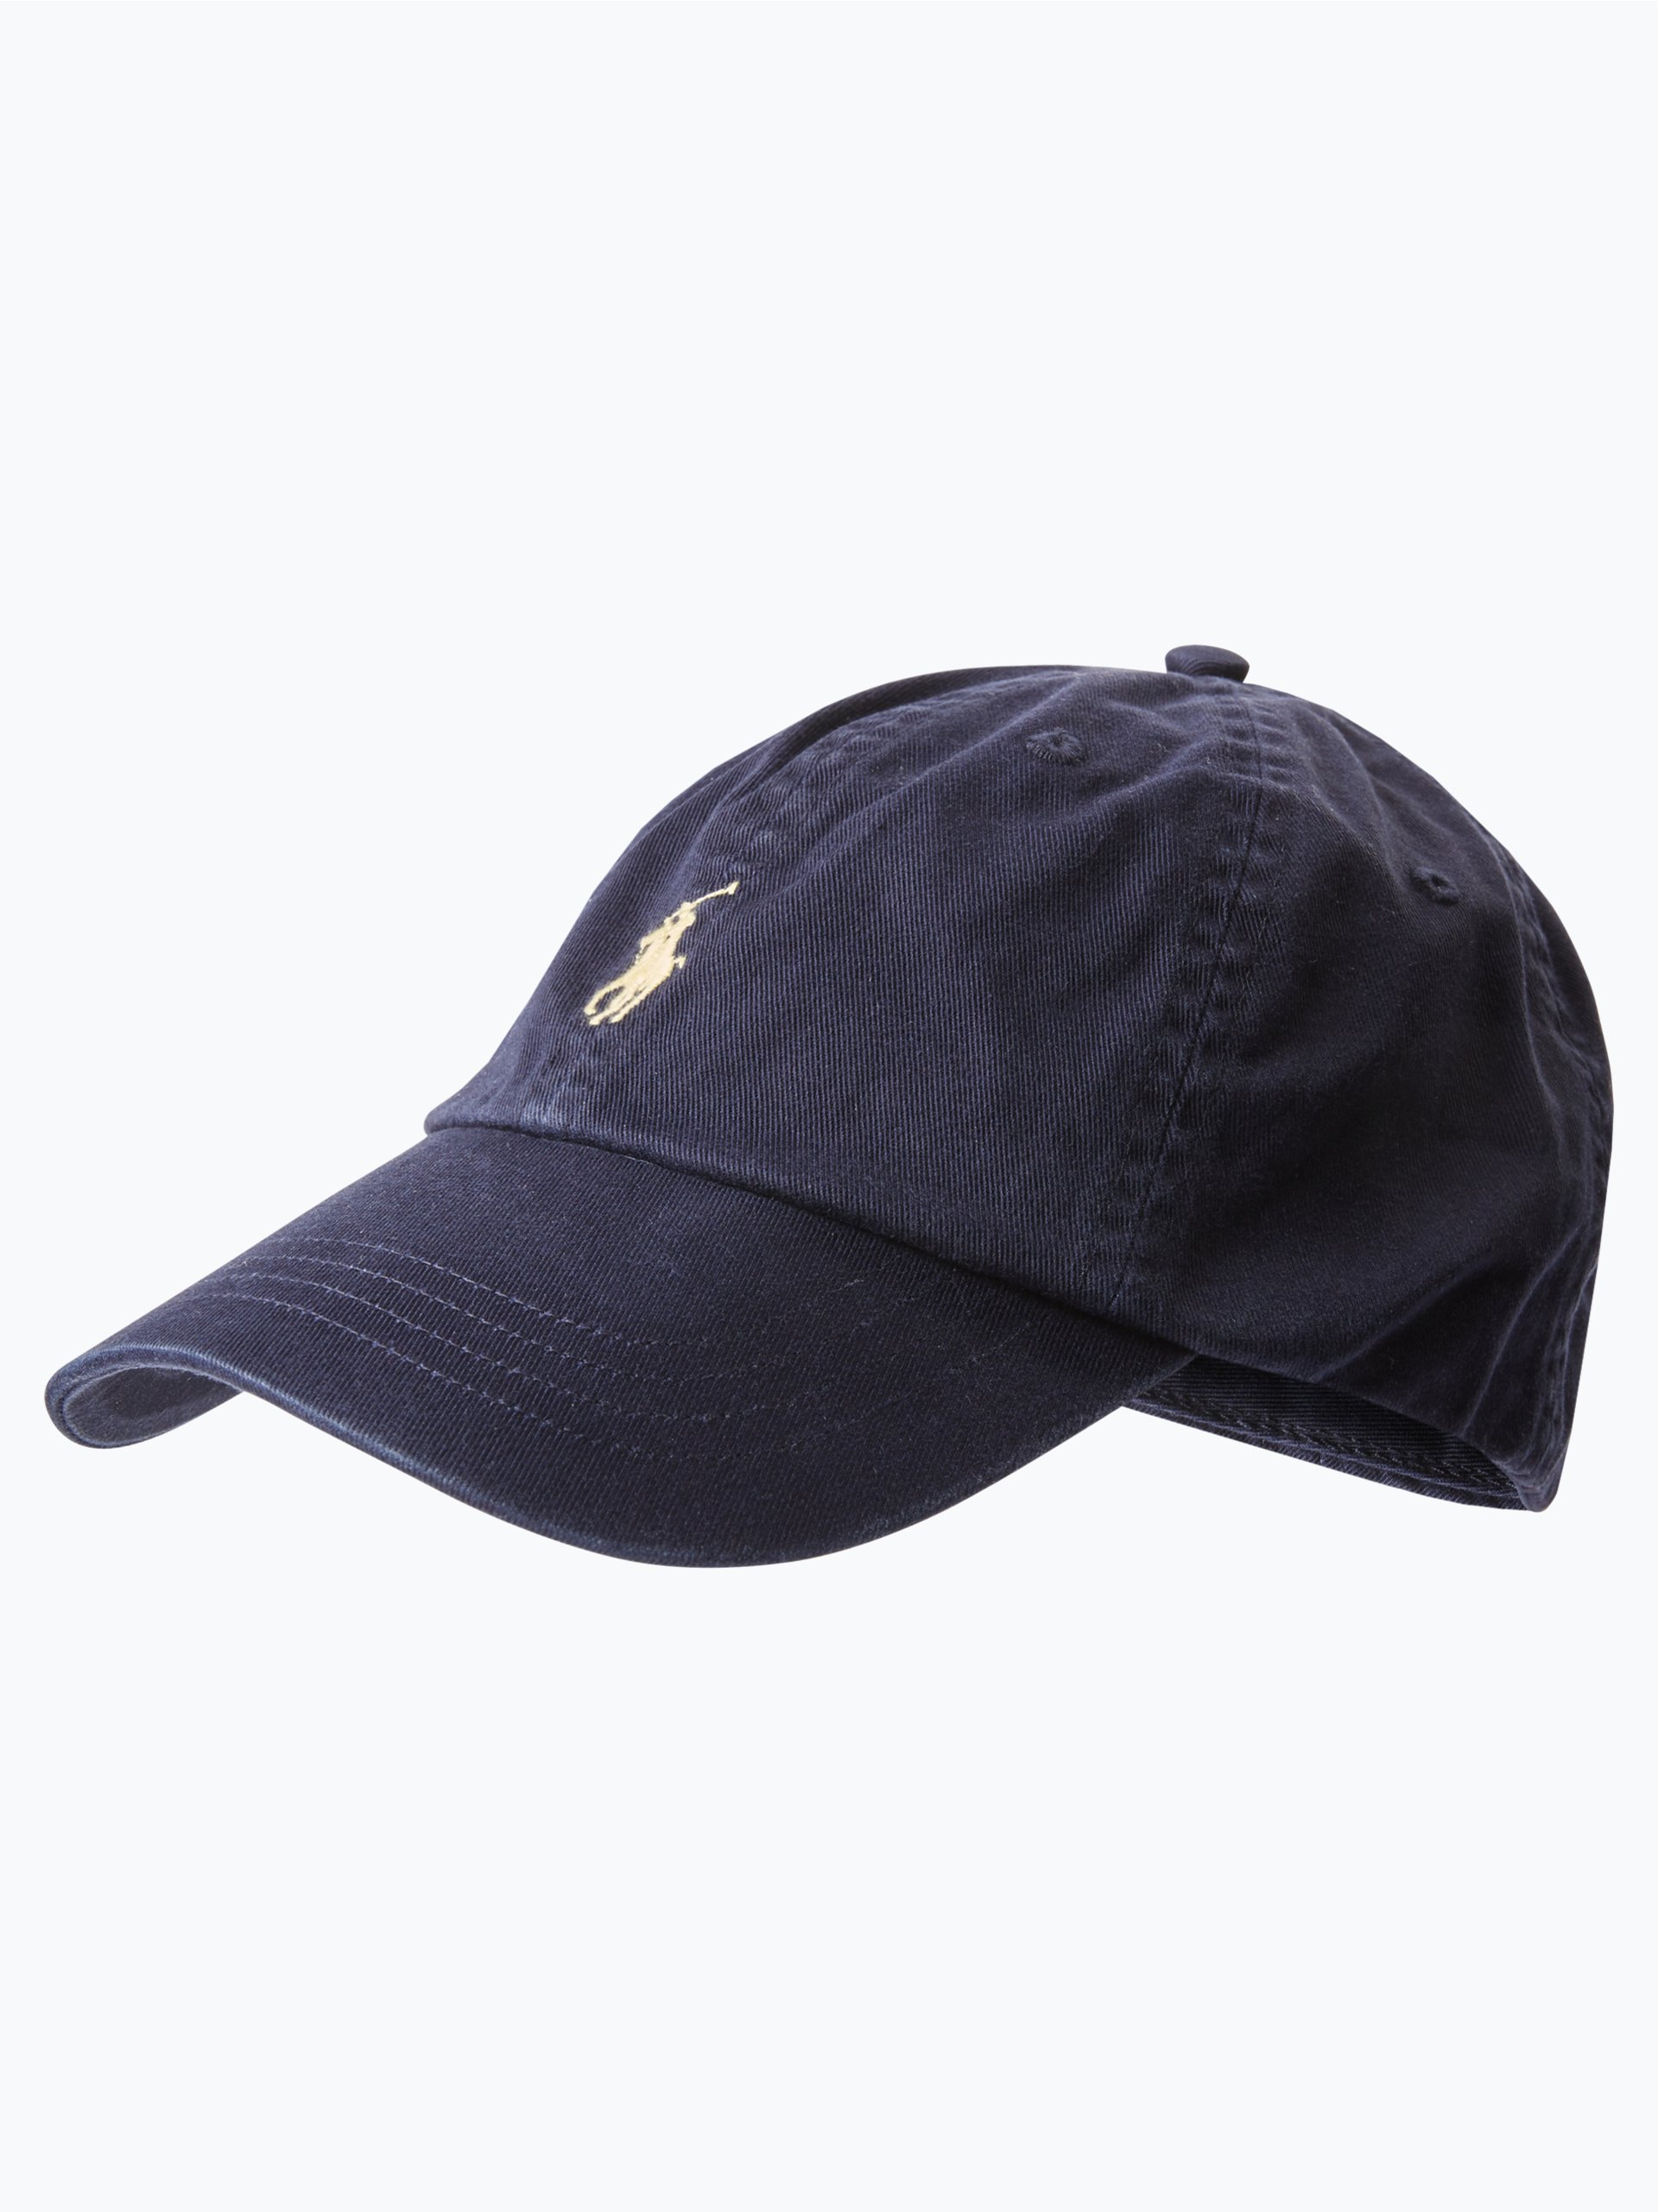 polo ralph lauren herren cap classic sport cap marine uni online kaufen vangraaf com. Black Bedroom Furniture Sets. Home Design Ideas